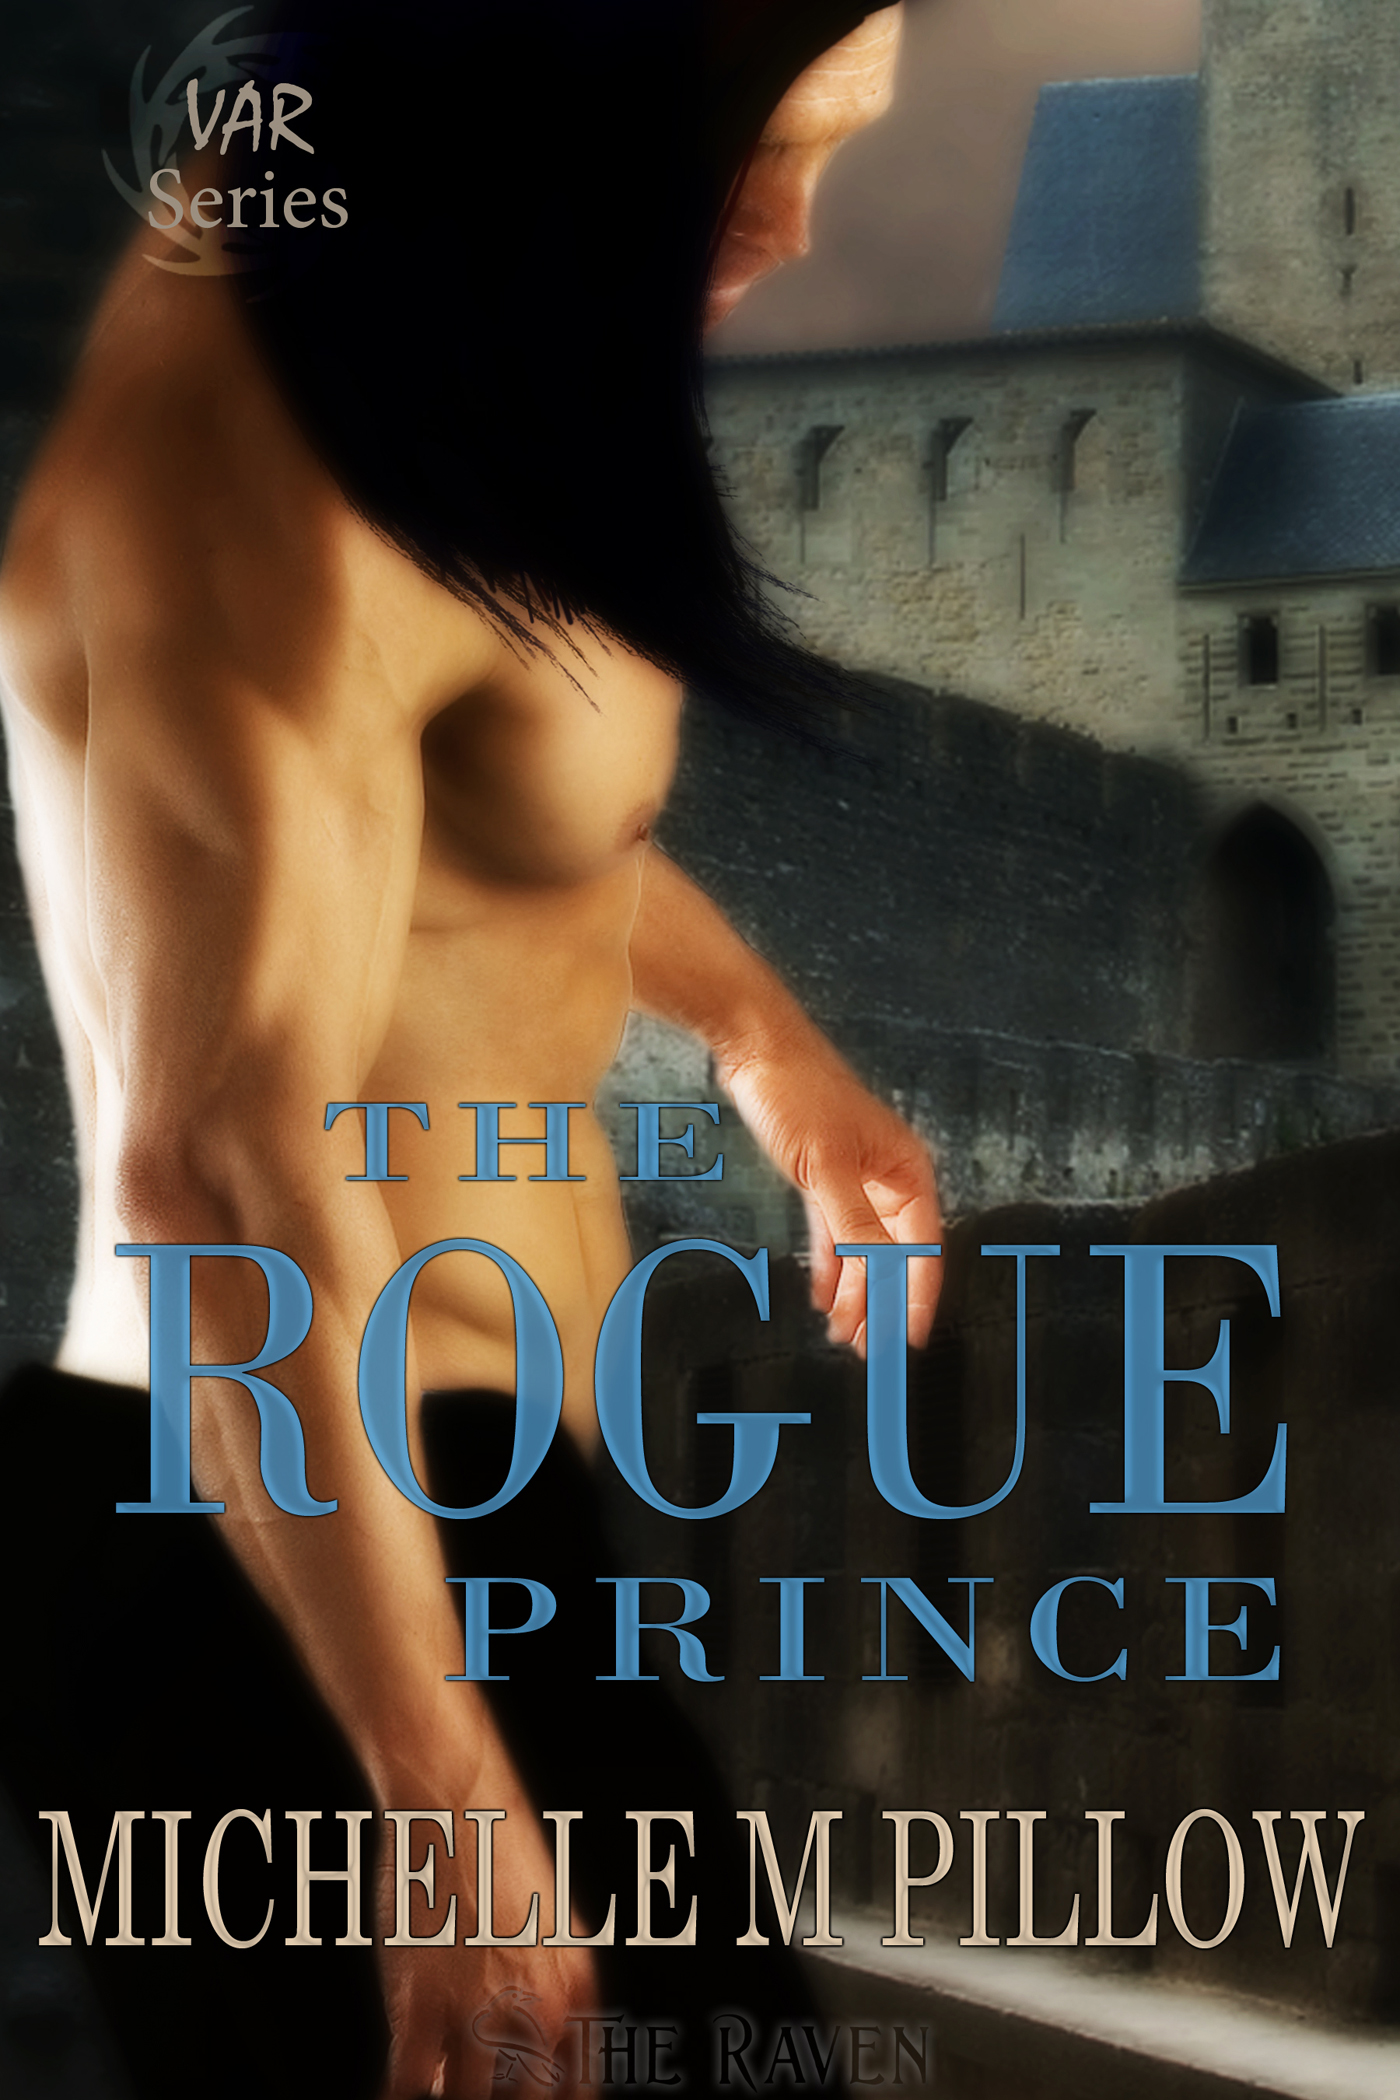 Michelle M. Pillow - The Rogue Prince (Lords of the Var 4)